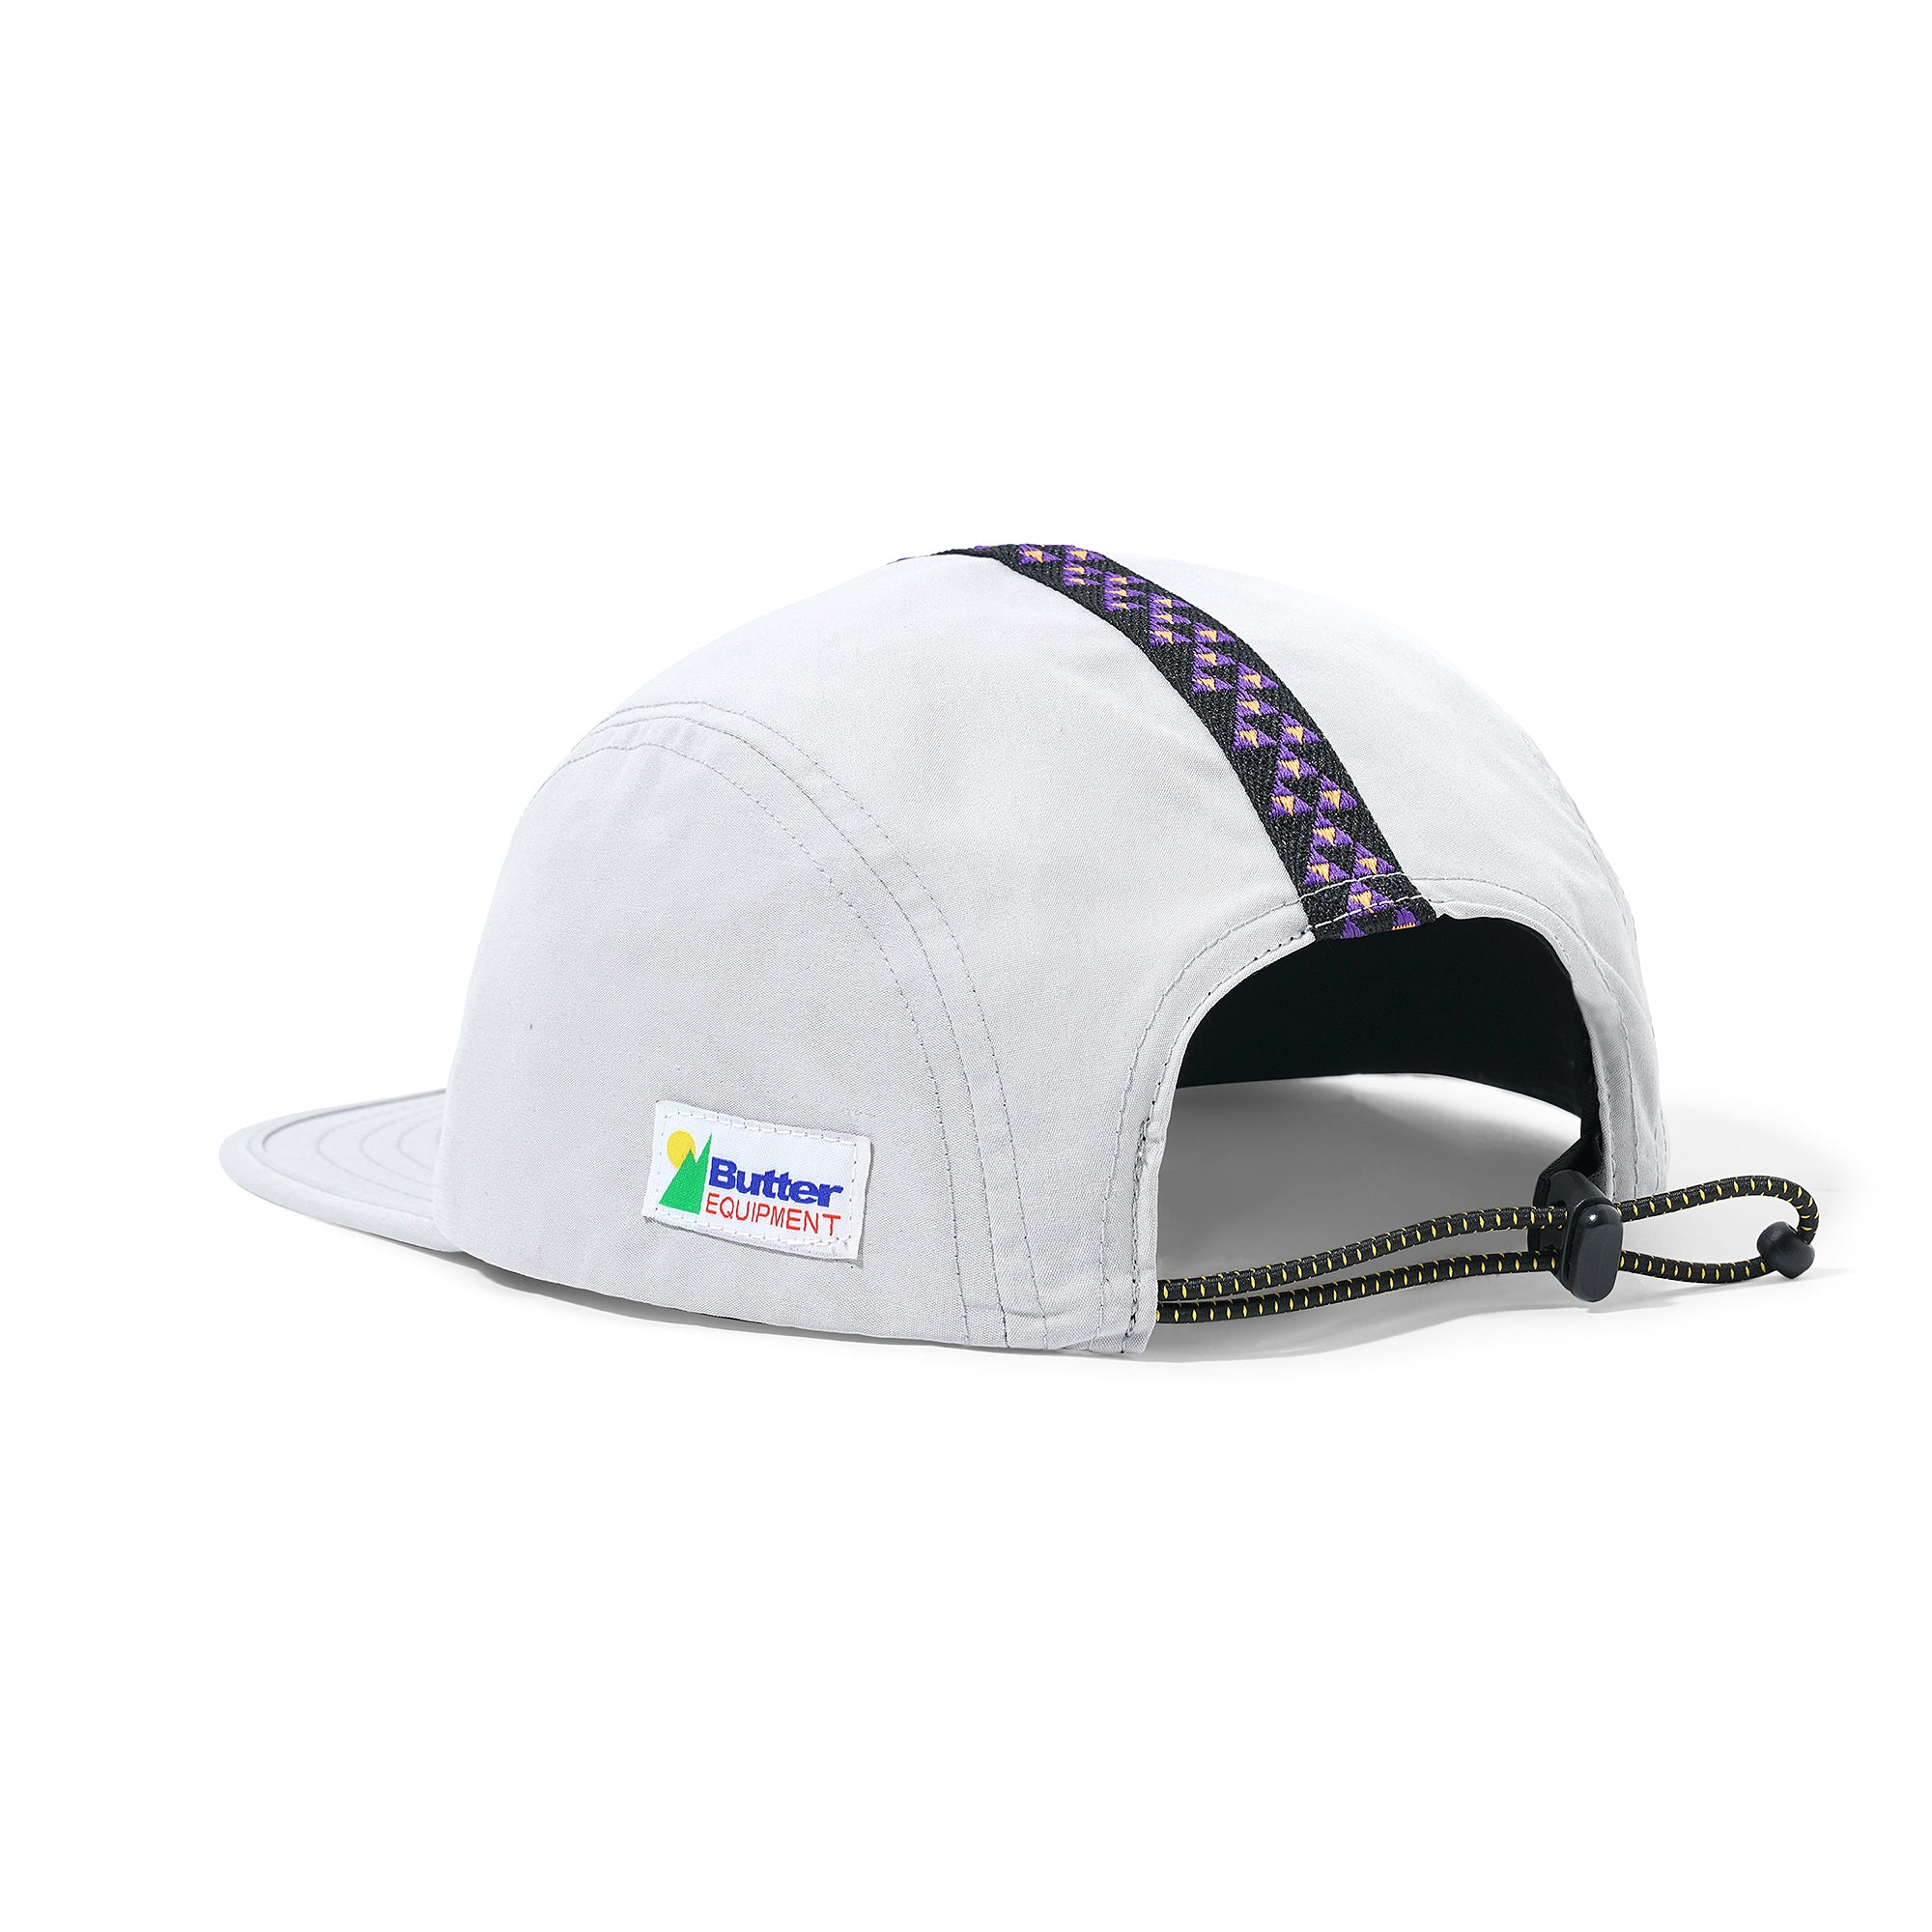 Butter Goods Equipment Camp Cap Product Photo #2